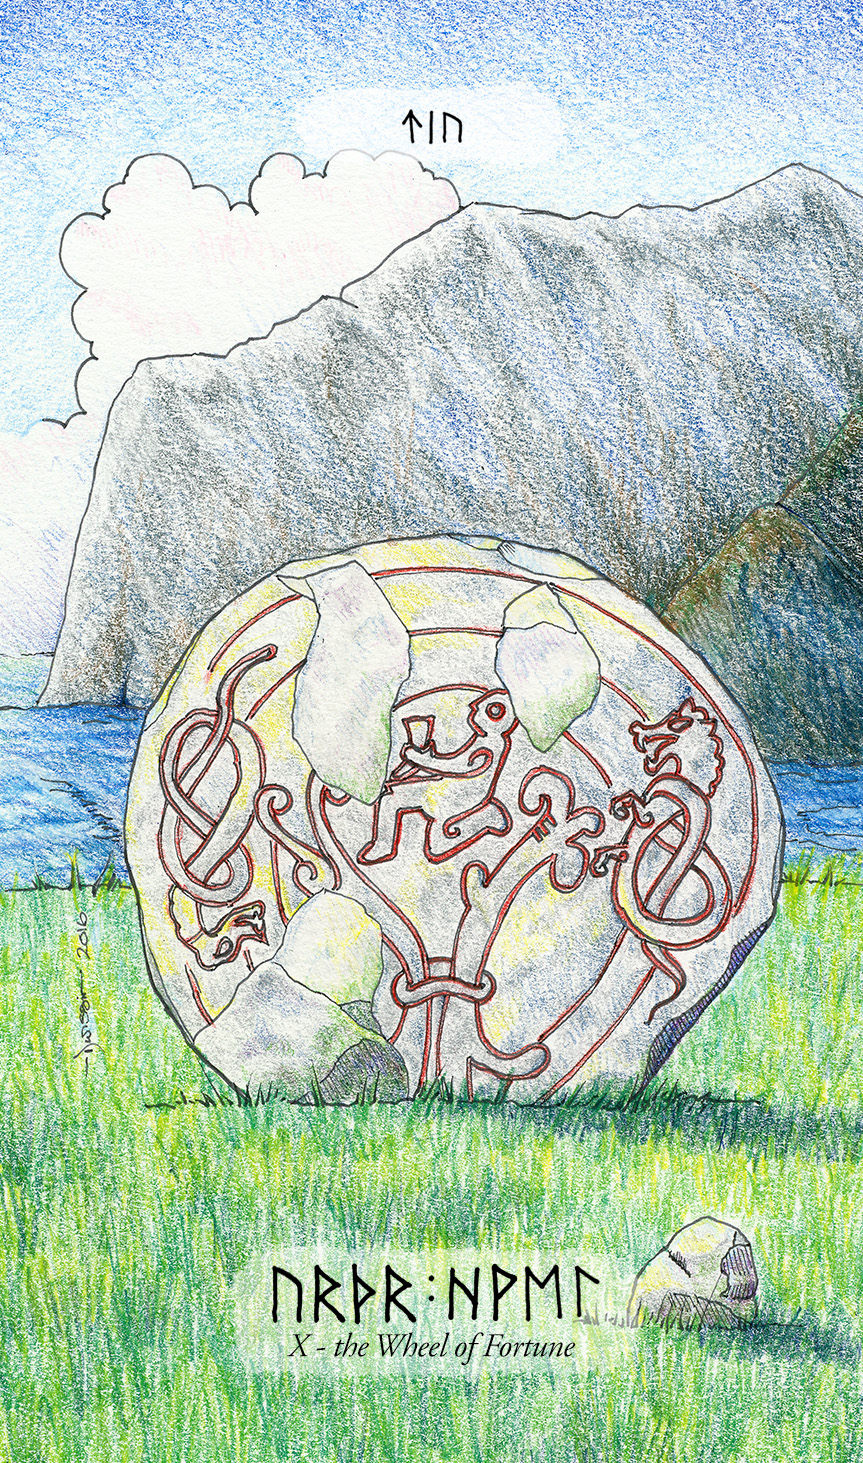 A weathered rune-stone as the Wheel of Fortune